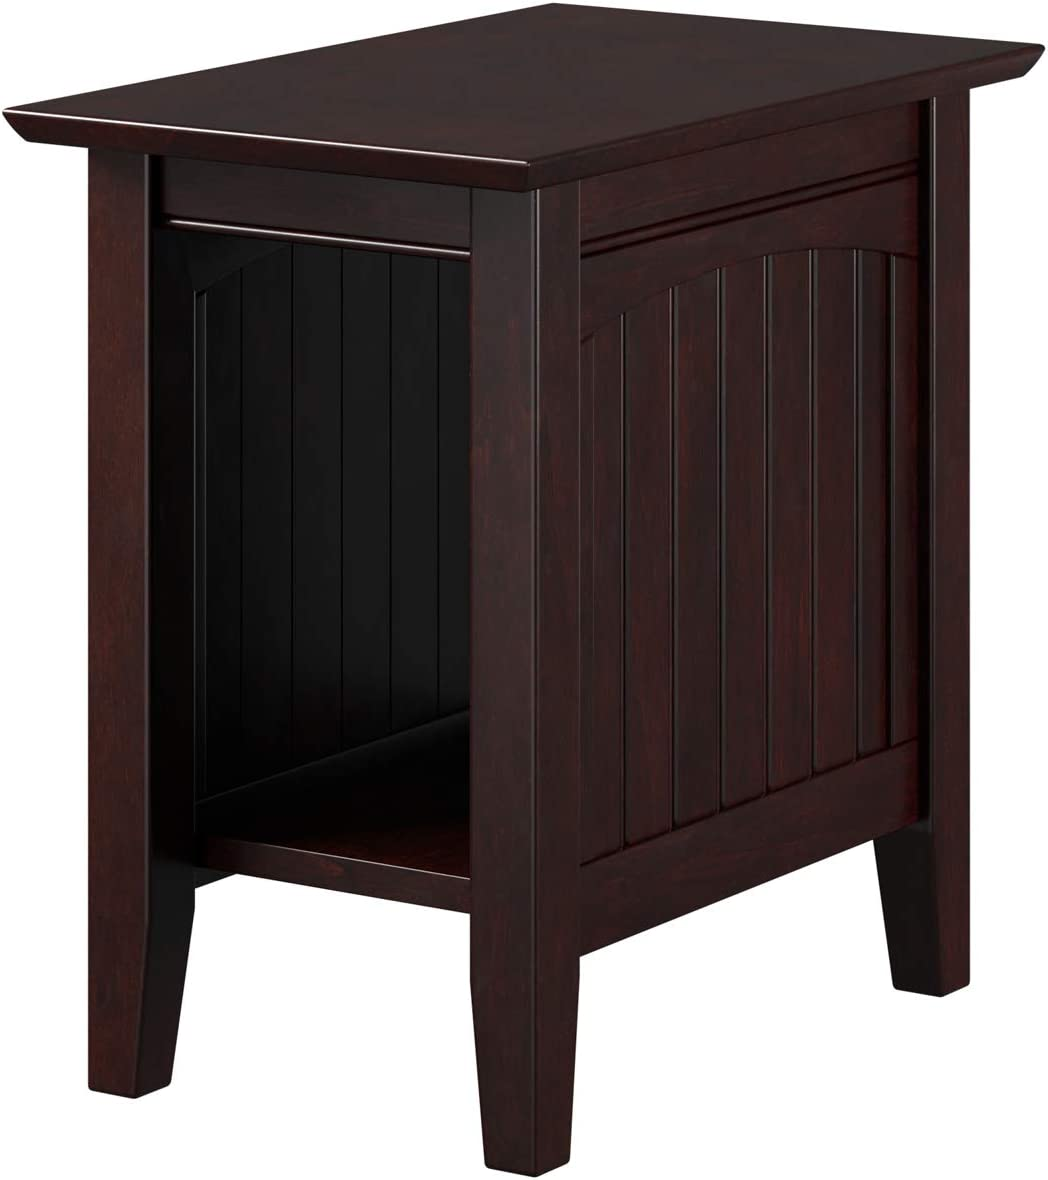 Atlantic Furniture Nantucket Chair Side Table, Espresso